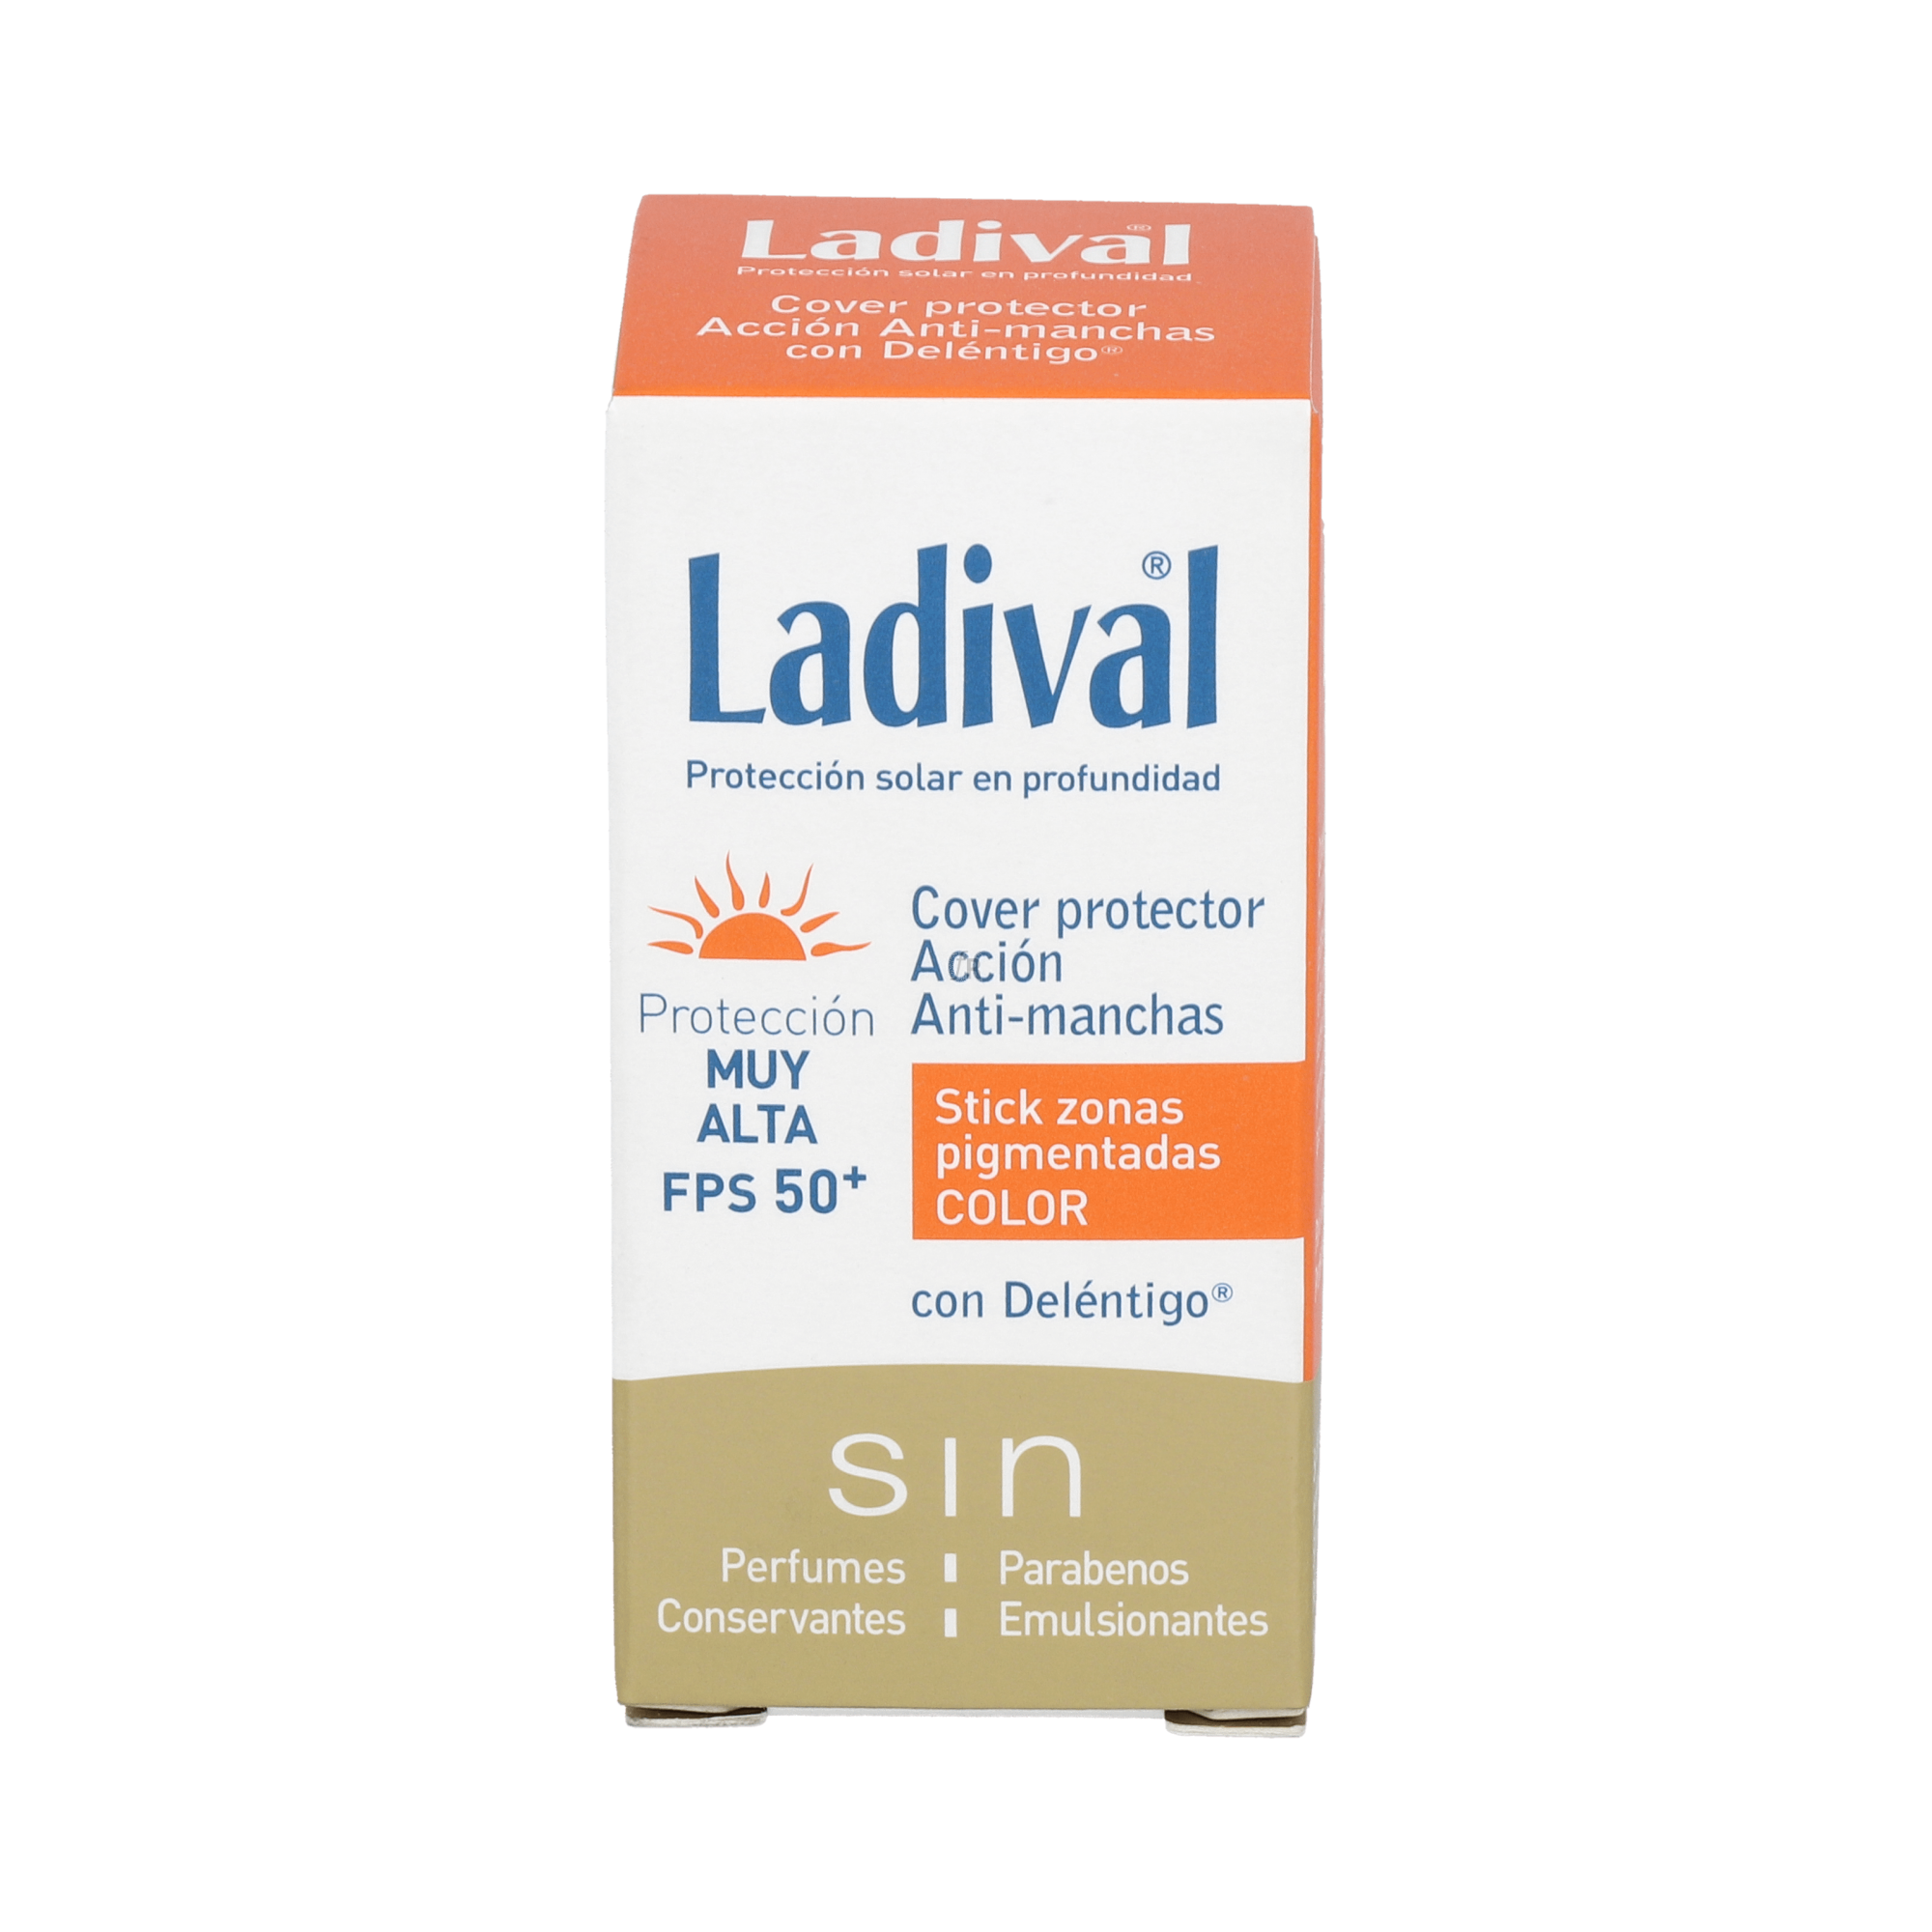 Ladival Antimanchas Cover Protec + Delentigo Fps 50 + Stick 4Ml